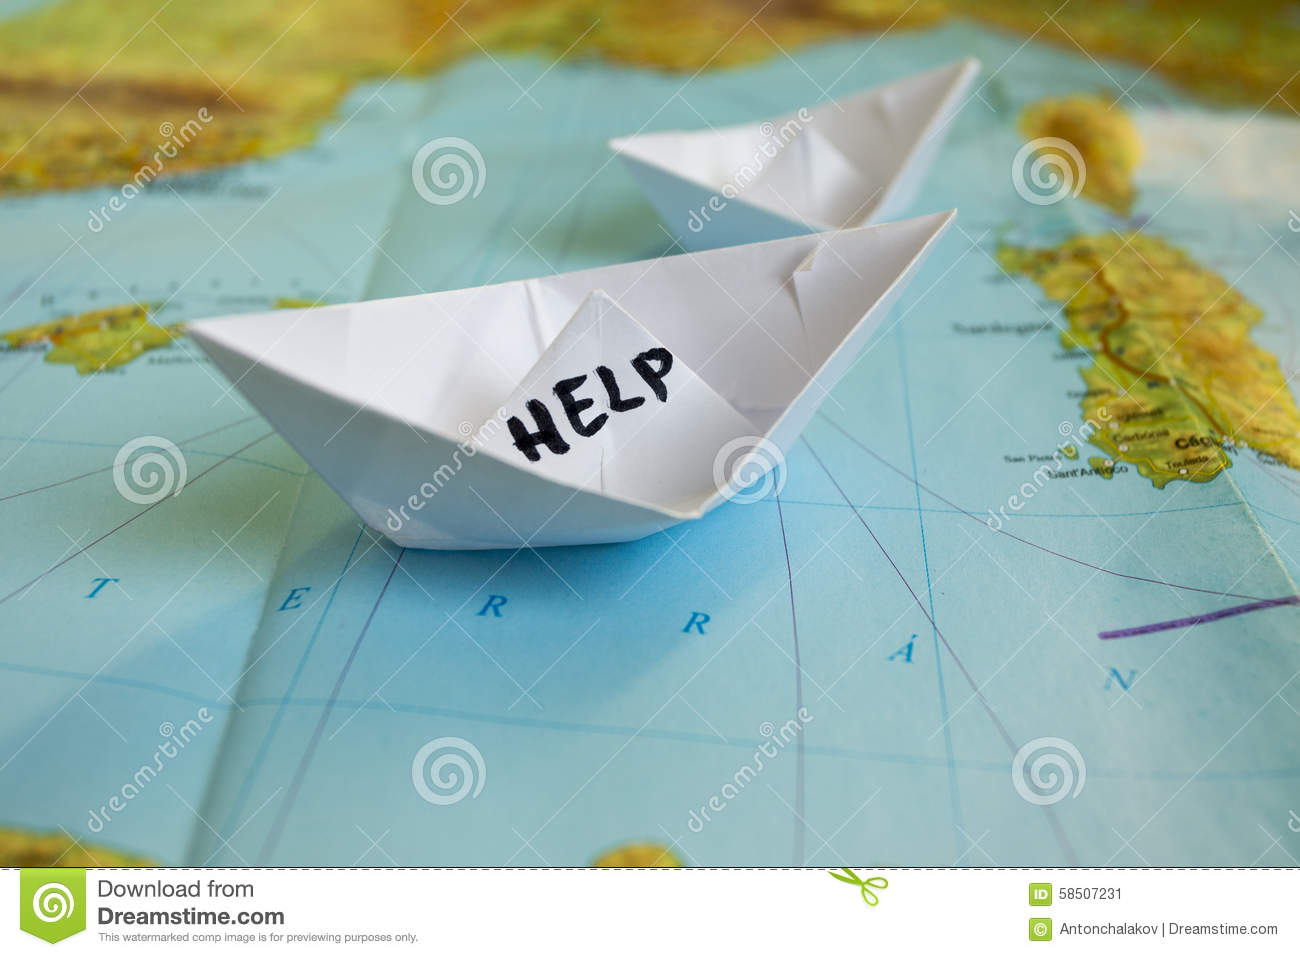 paper boat map help refugees stock photo image  paper boat map help refugees